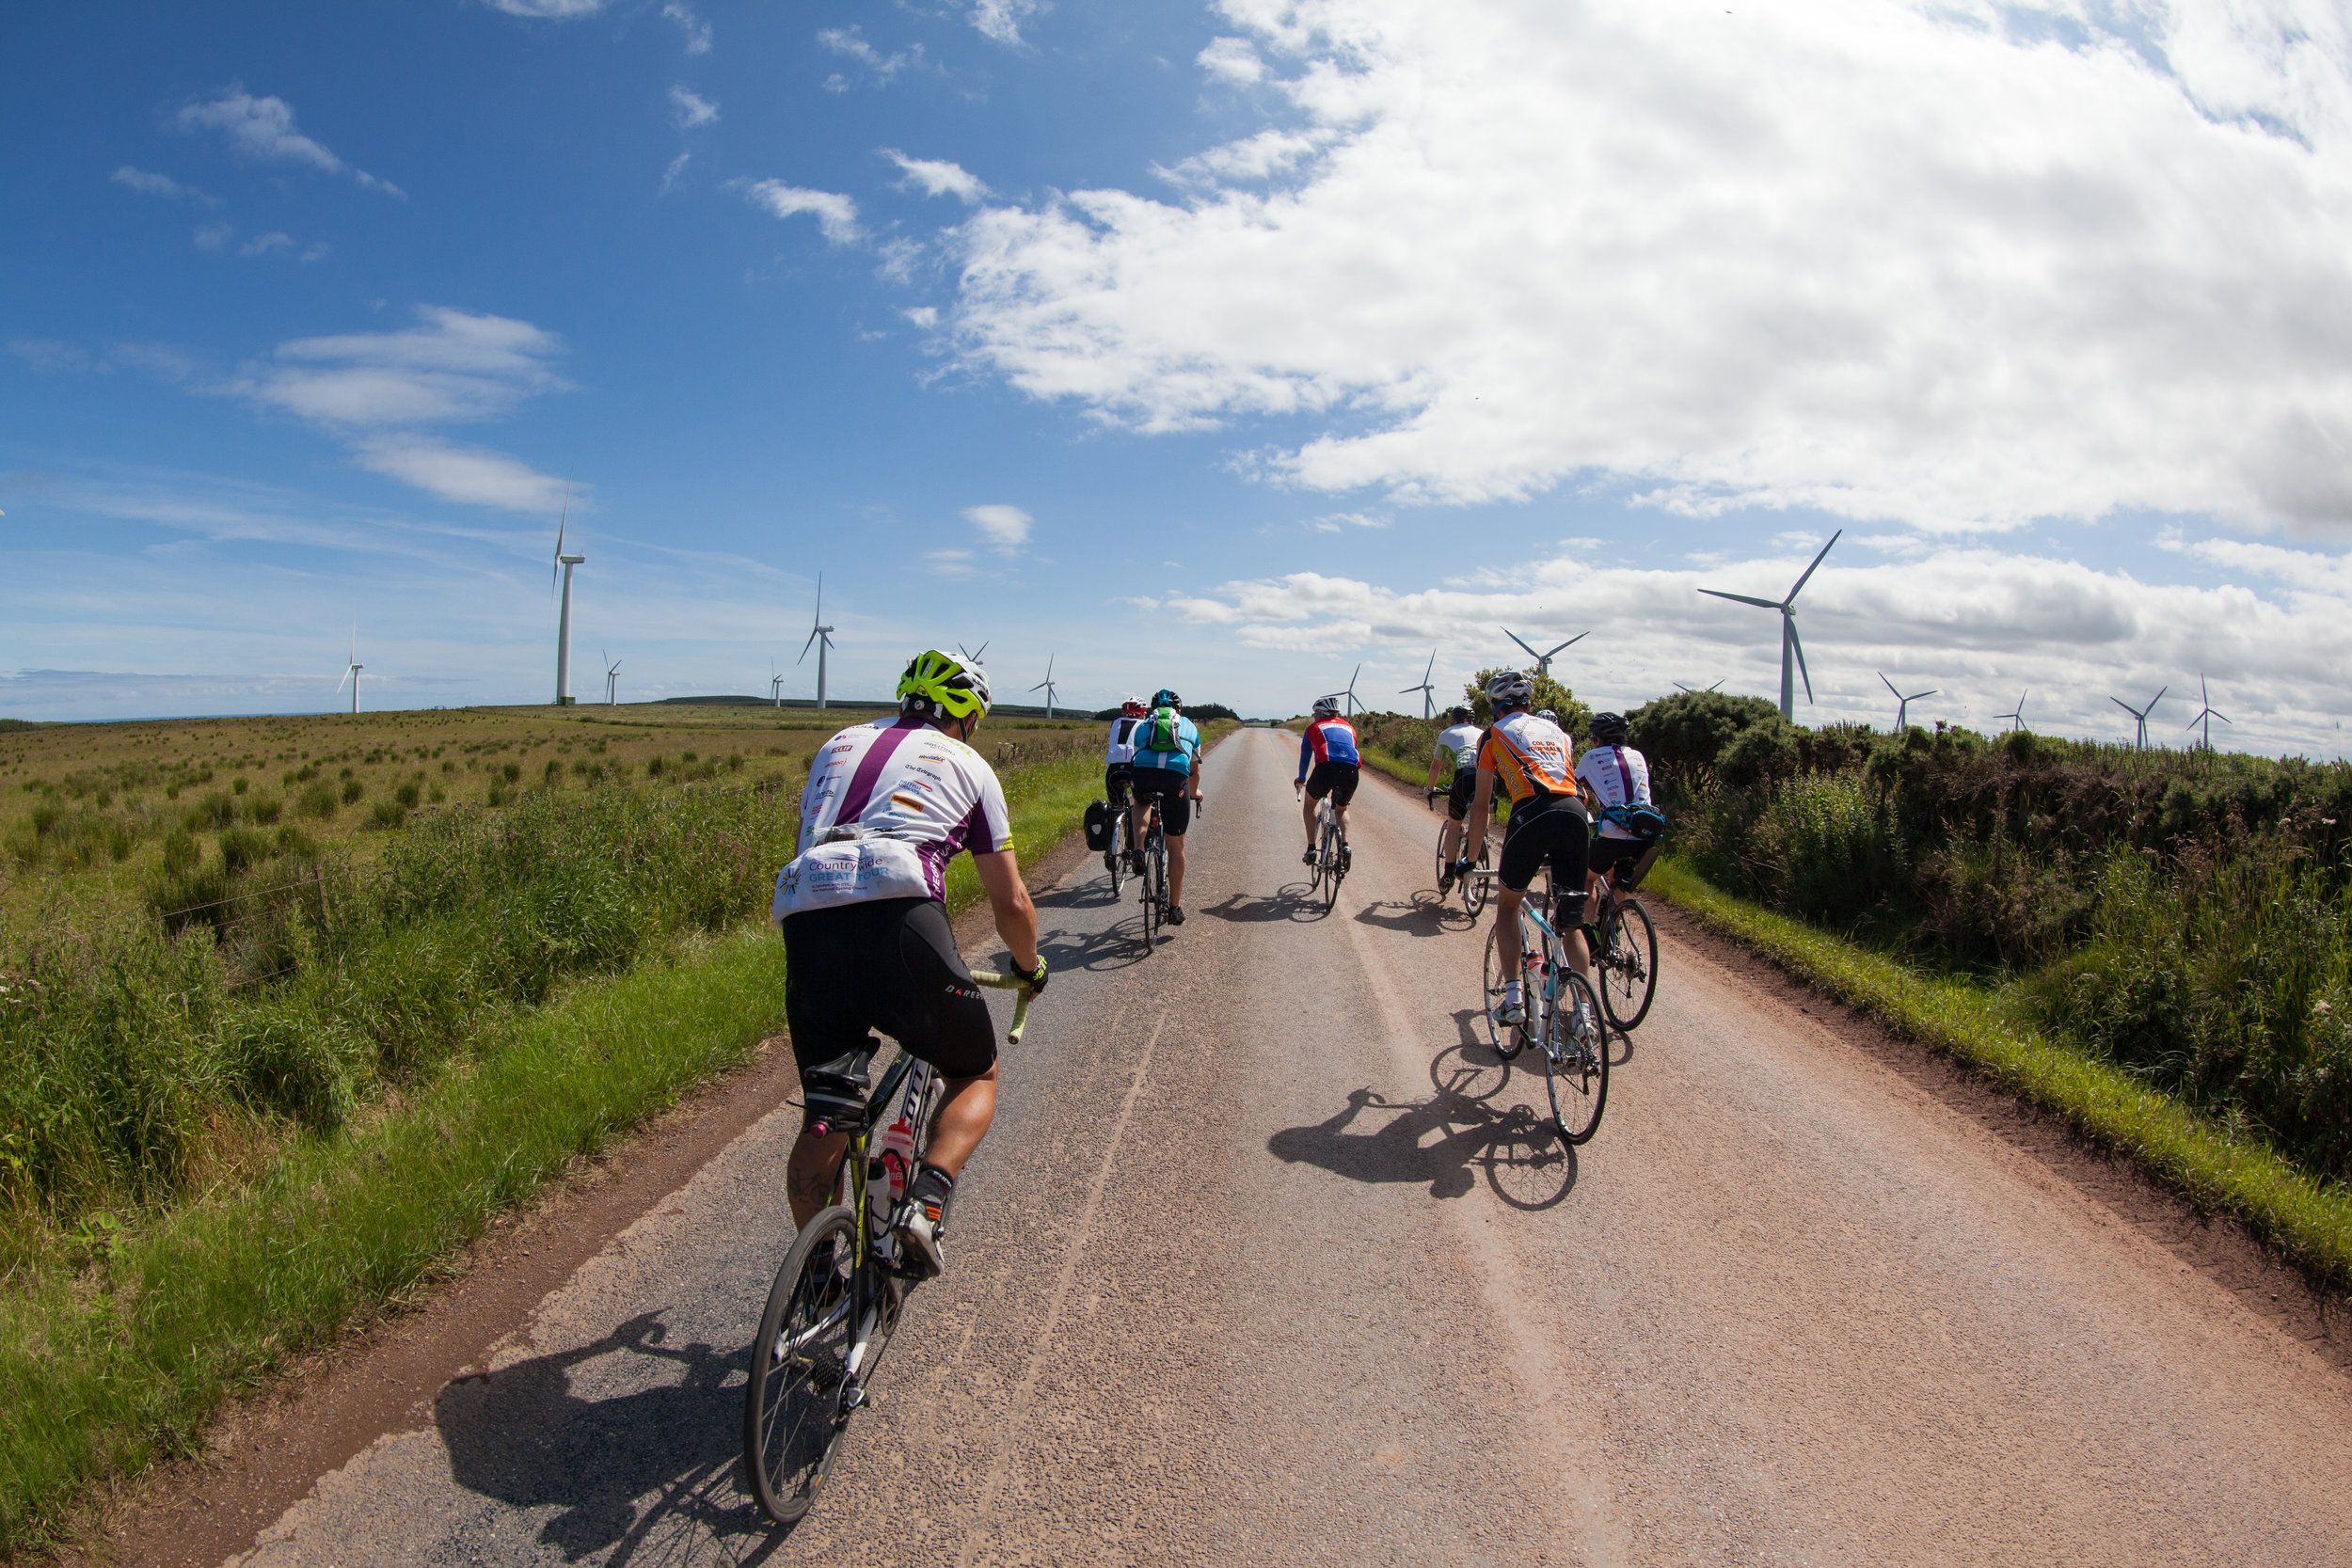 Cyclists in Scotland.